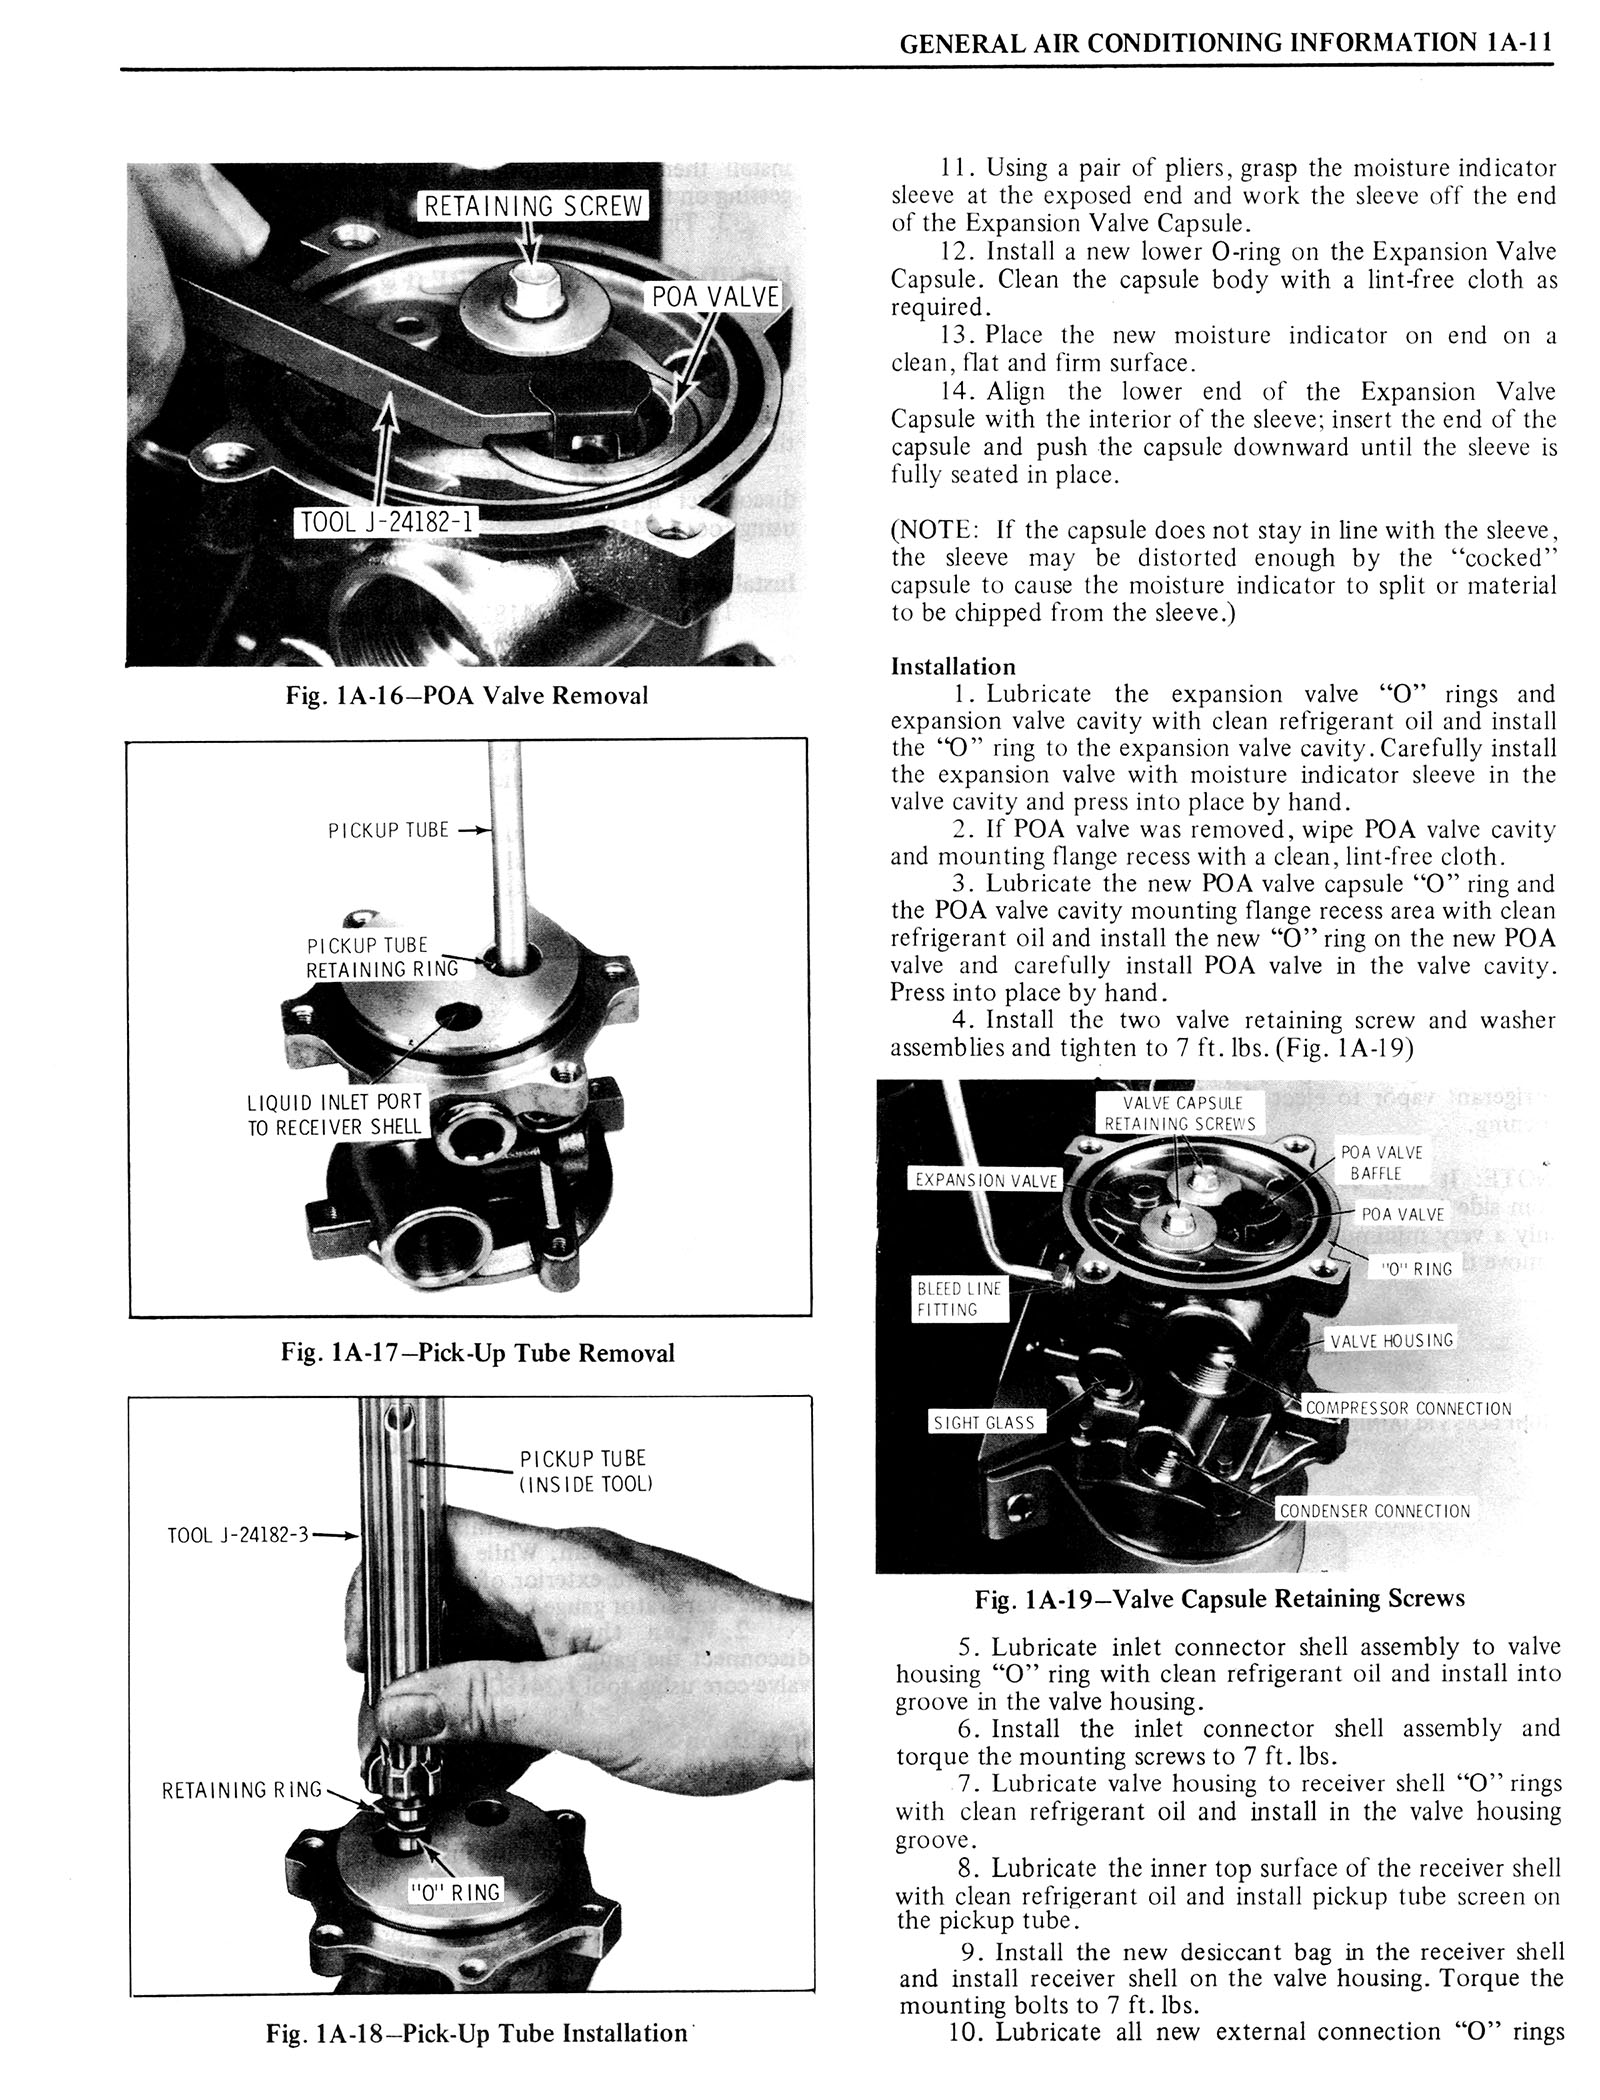 1976 Oldsmobile Service Manual page 53 of 1390